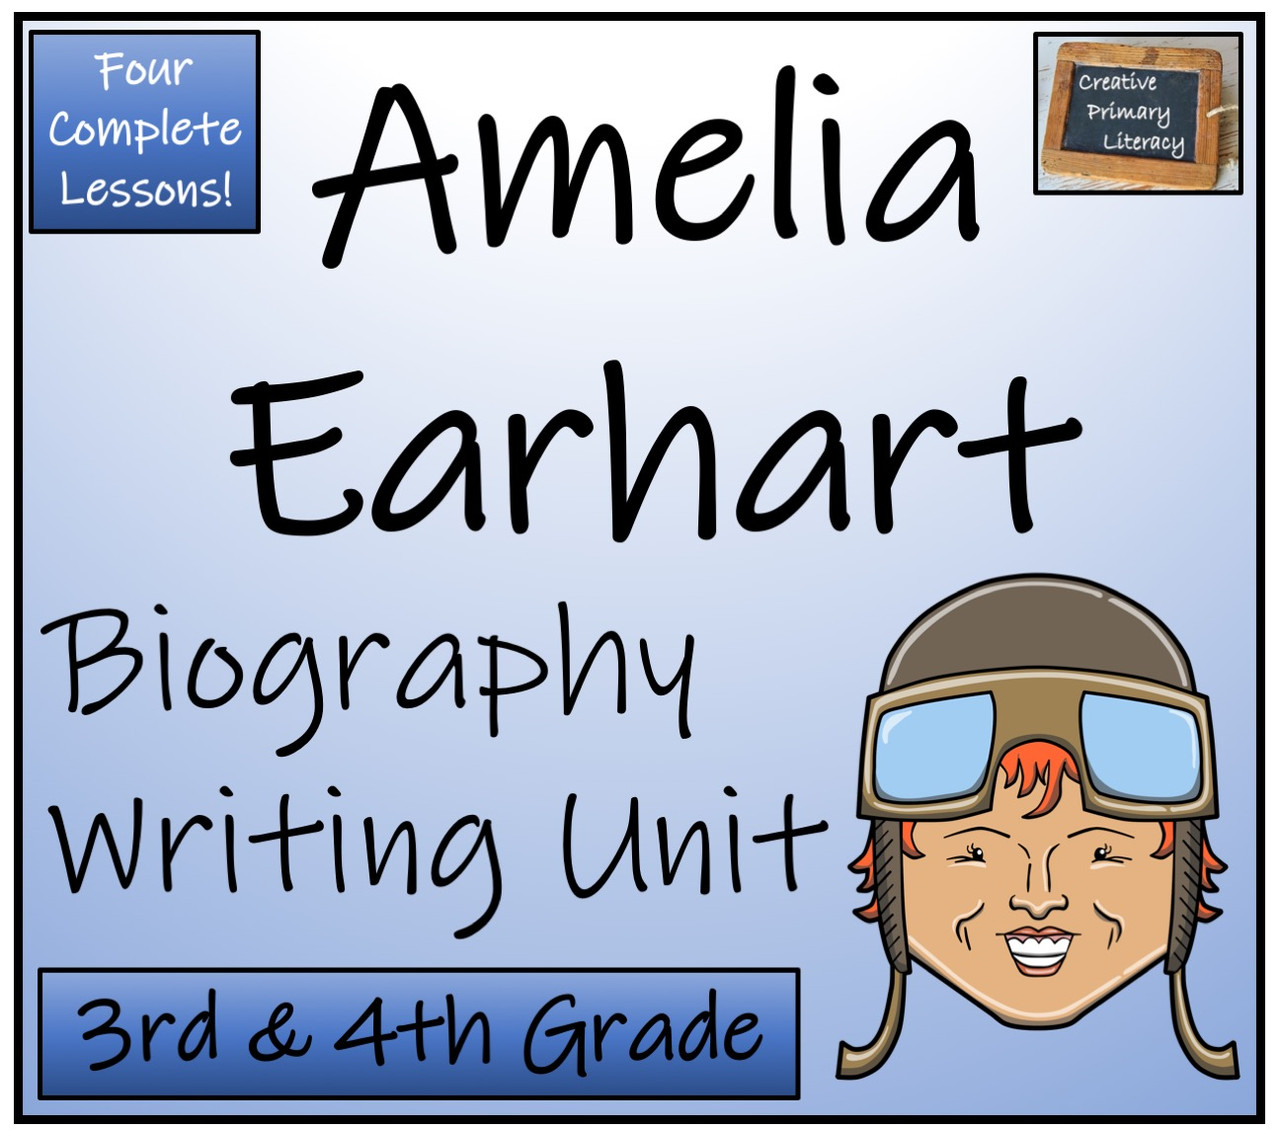 medium resolution of Amelia Earhart - 3rd \u0026 4th Grade Biography Writing Activity - Amped Up  Learning